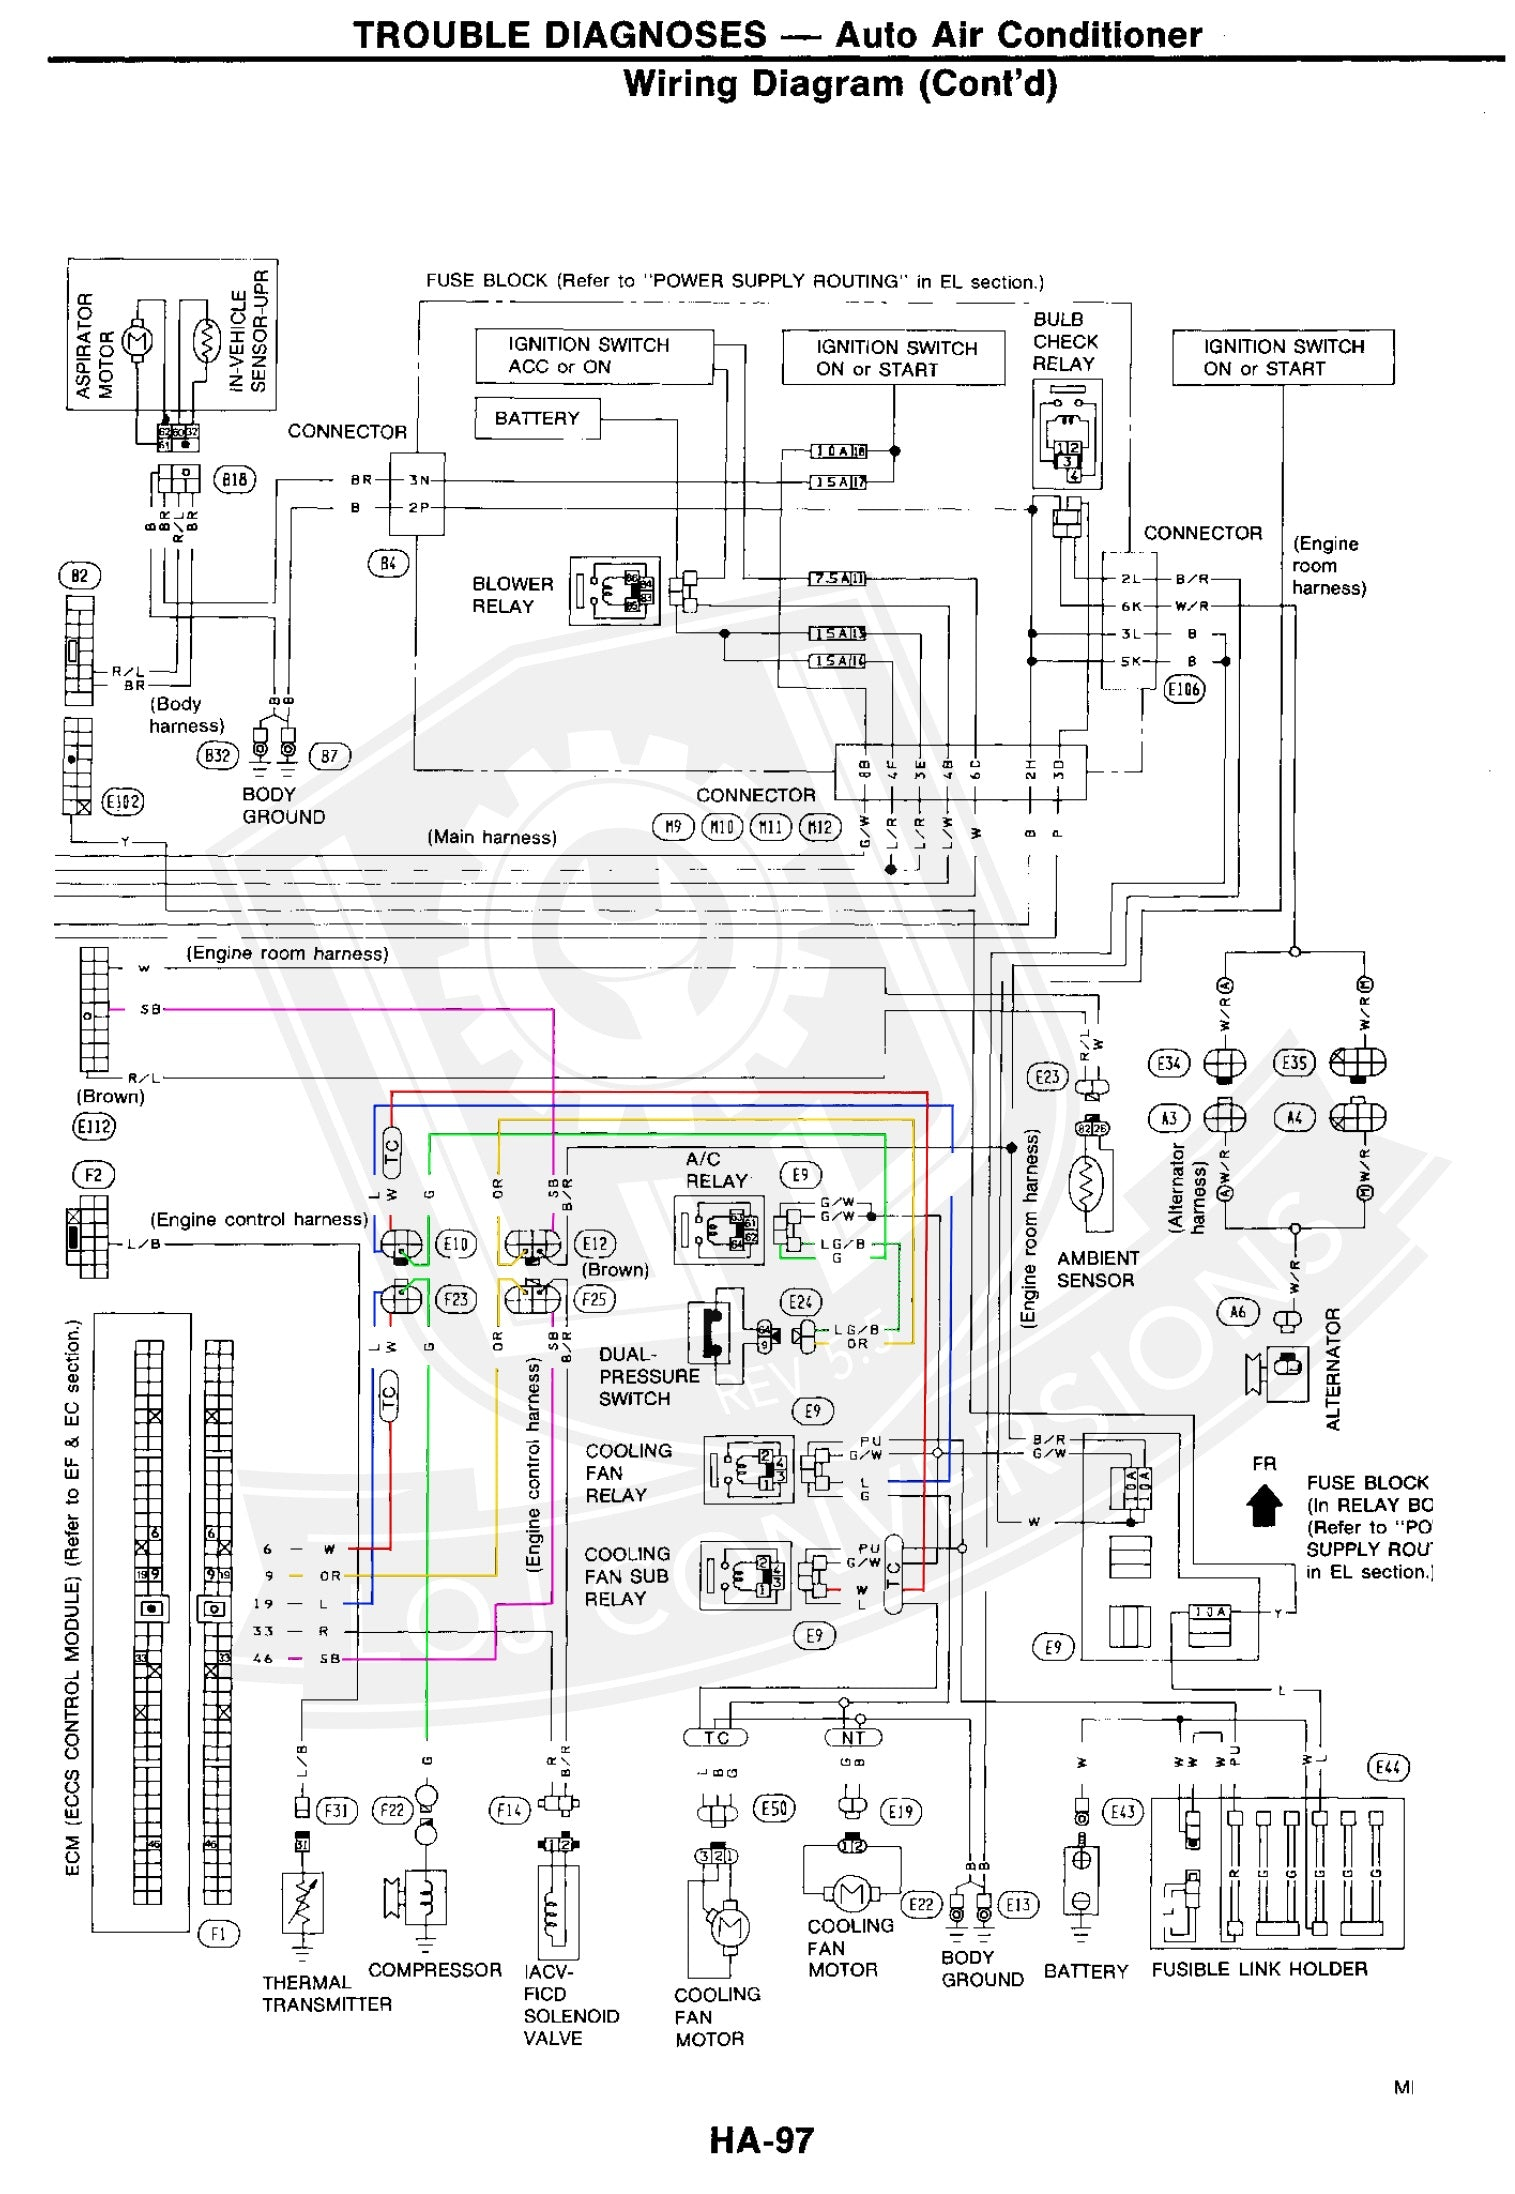 Z32 Wiring Diagram Harness 2002 Nissan Altima Guide And Sentra Fuse 1990 300zx Engine Schematic Rh 8 13 1813weddingbarn Com Stereo 2005